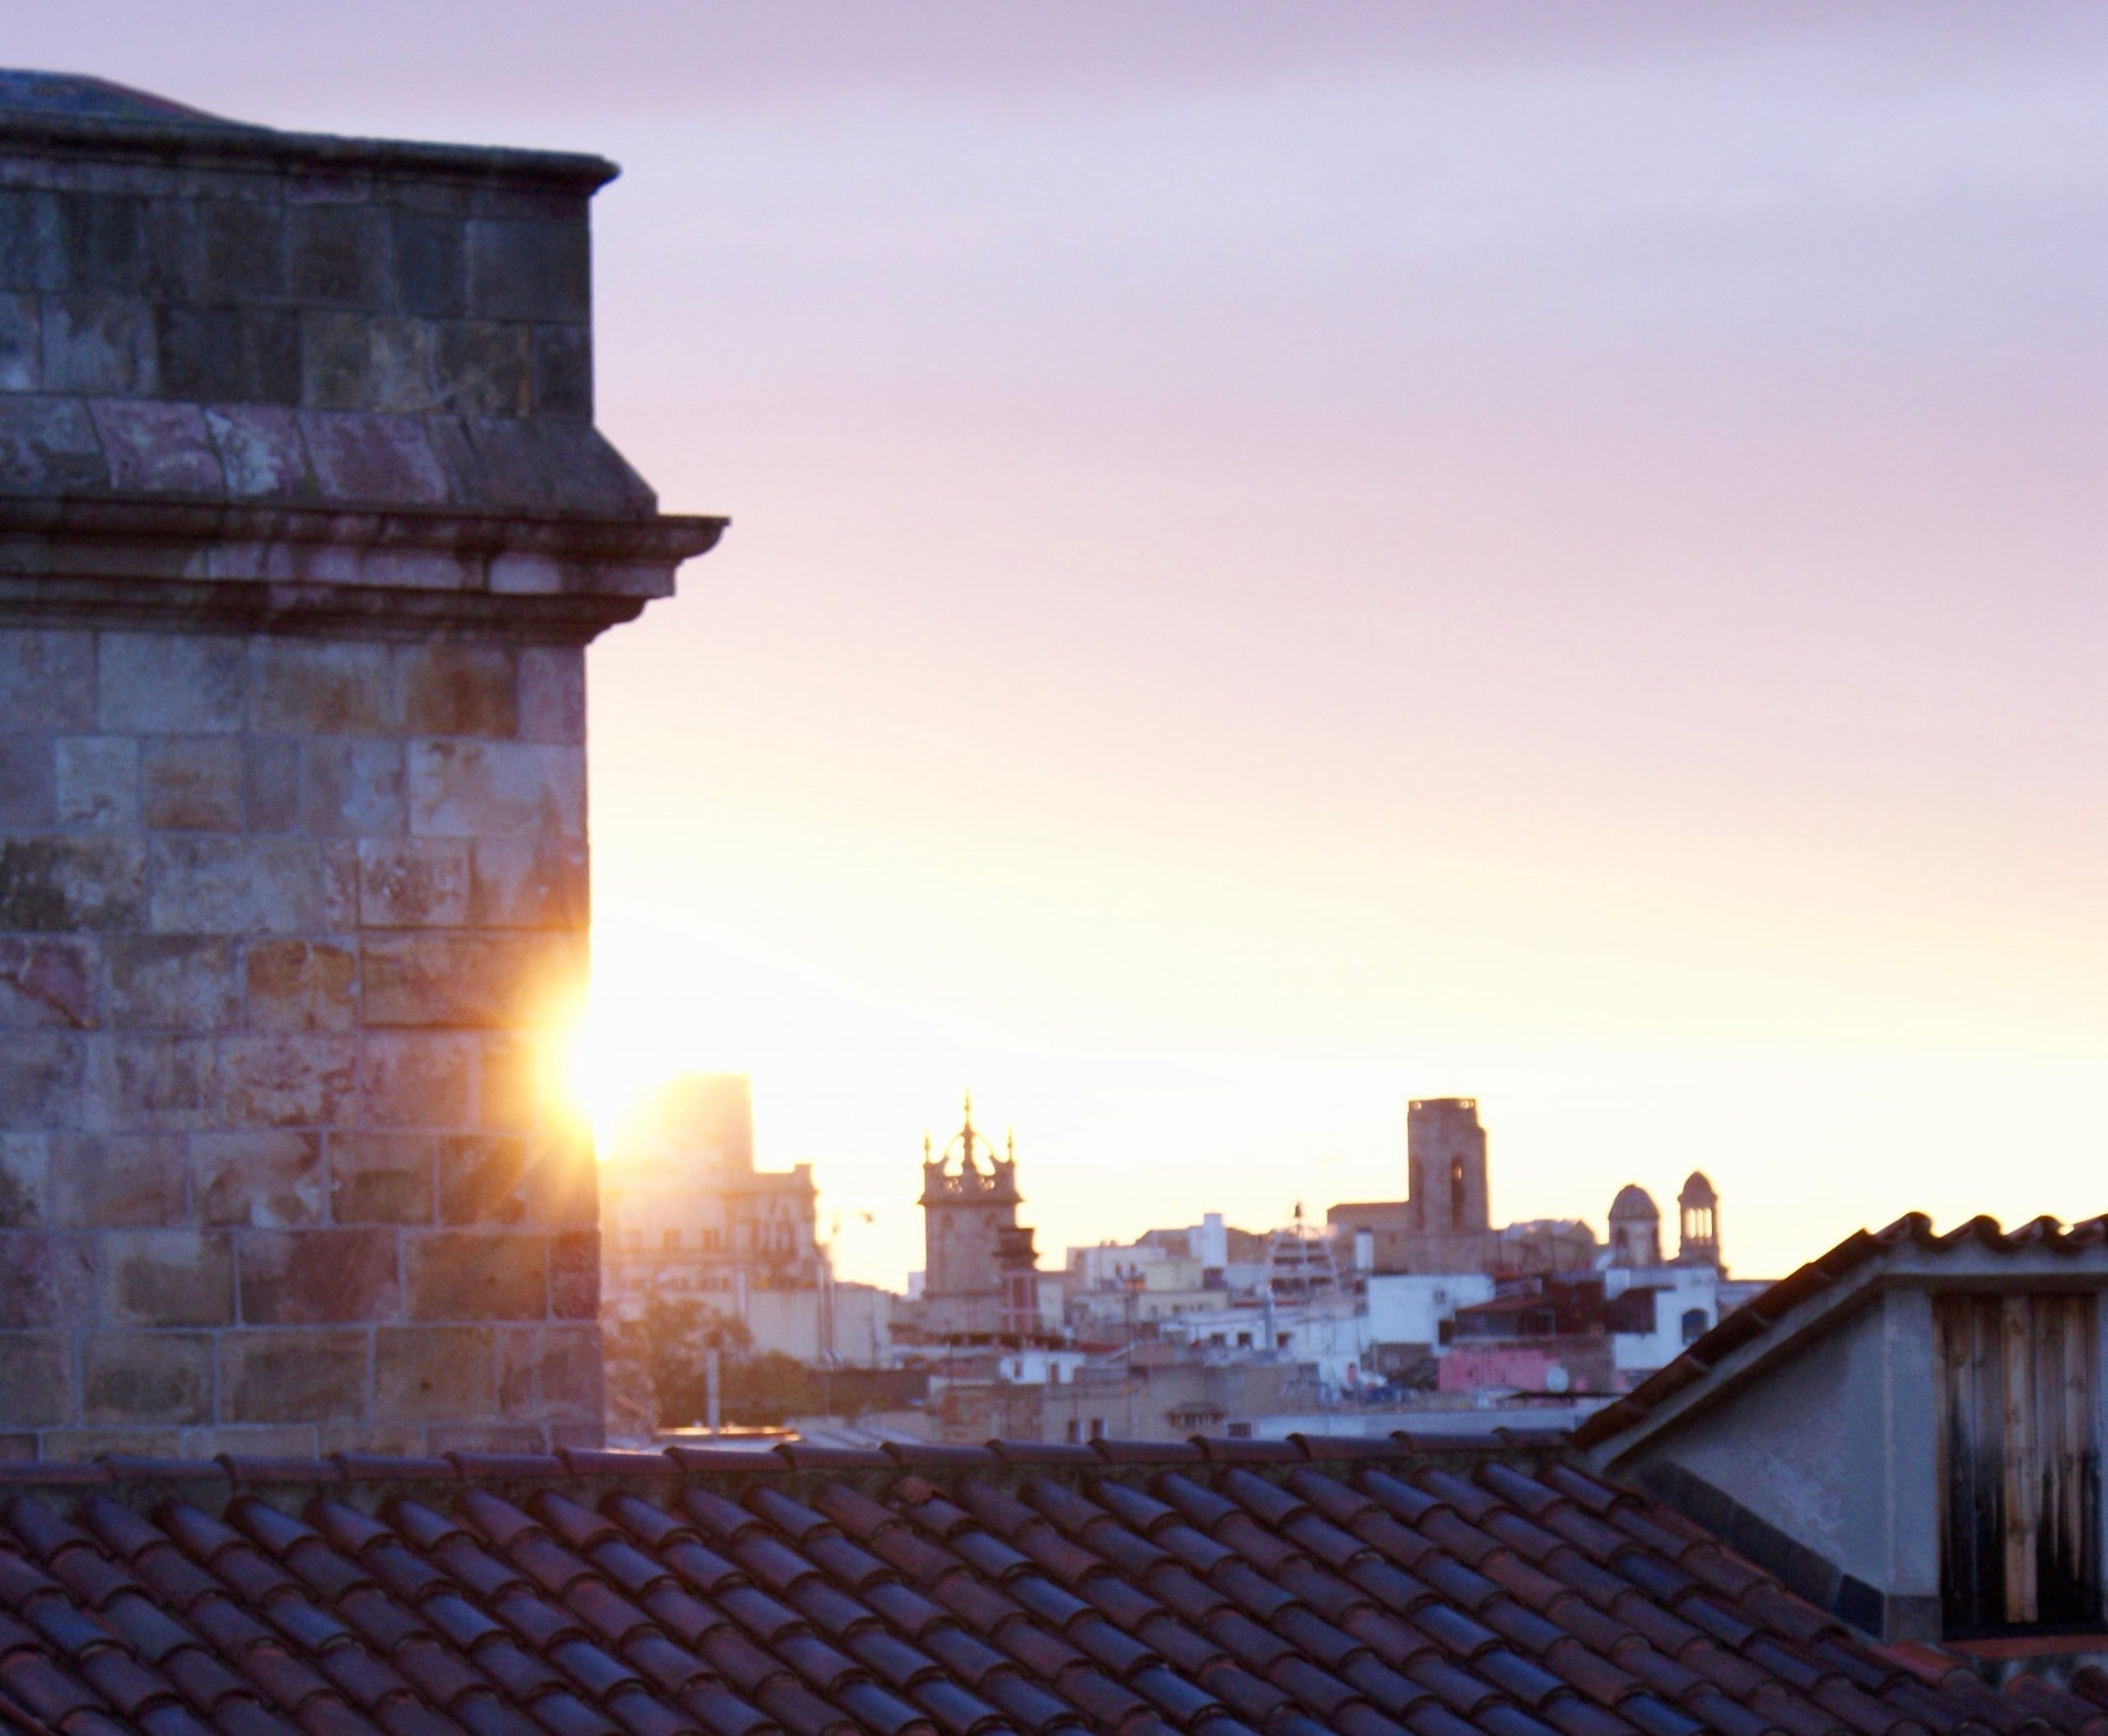 looking out at sunrise over rooftops in downtown Barcelona near La Rambla